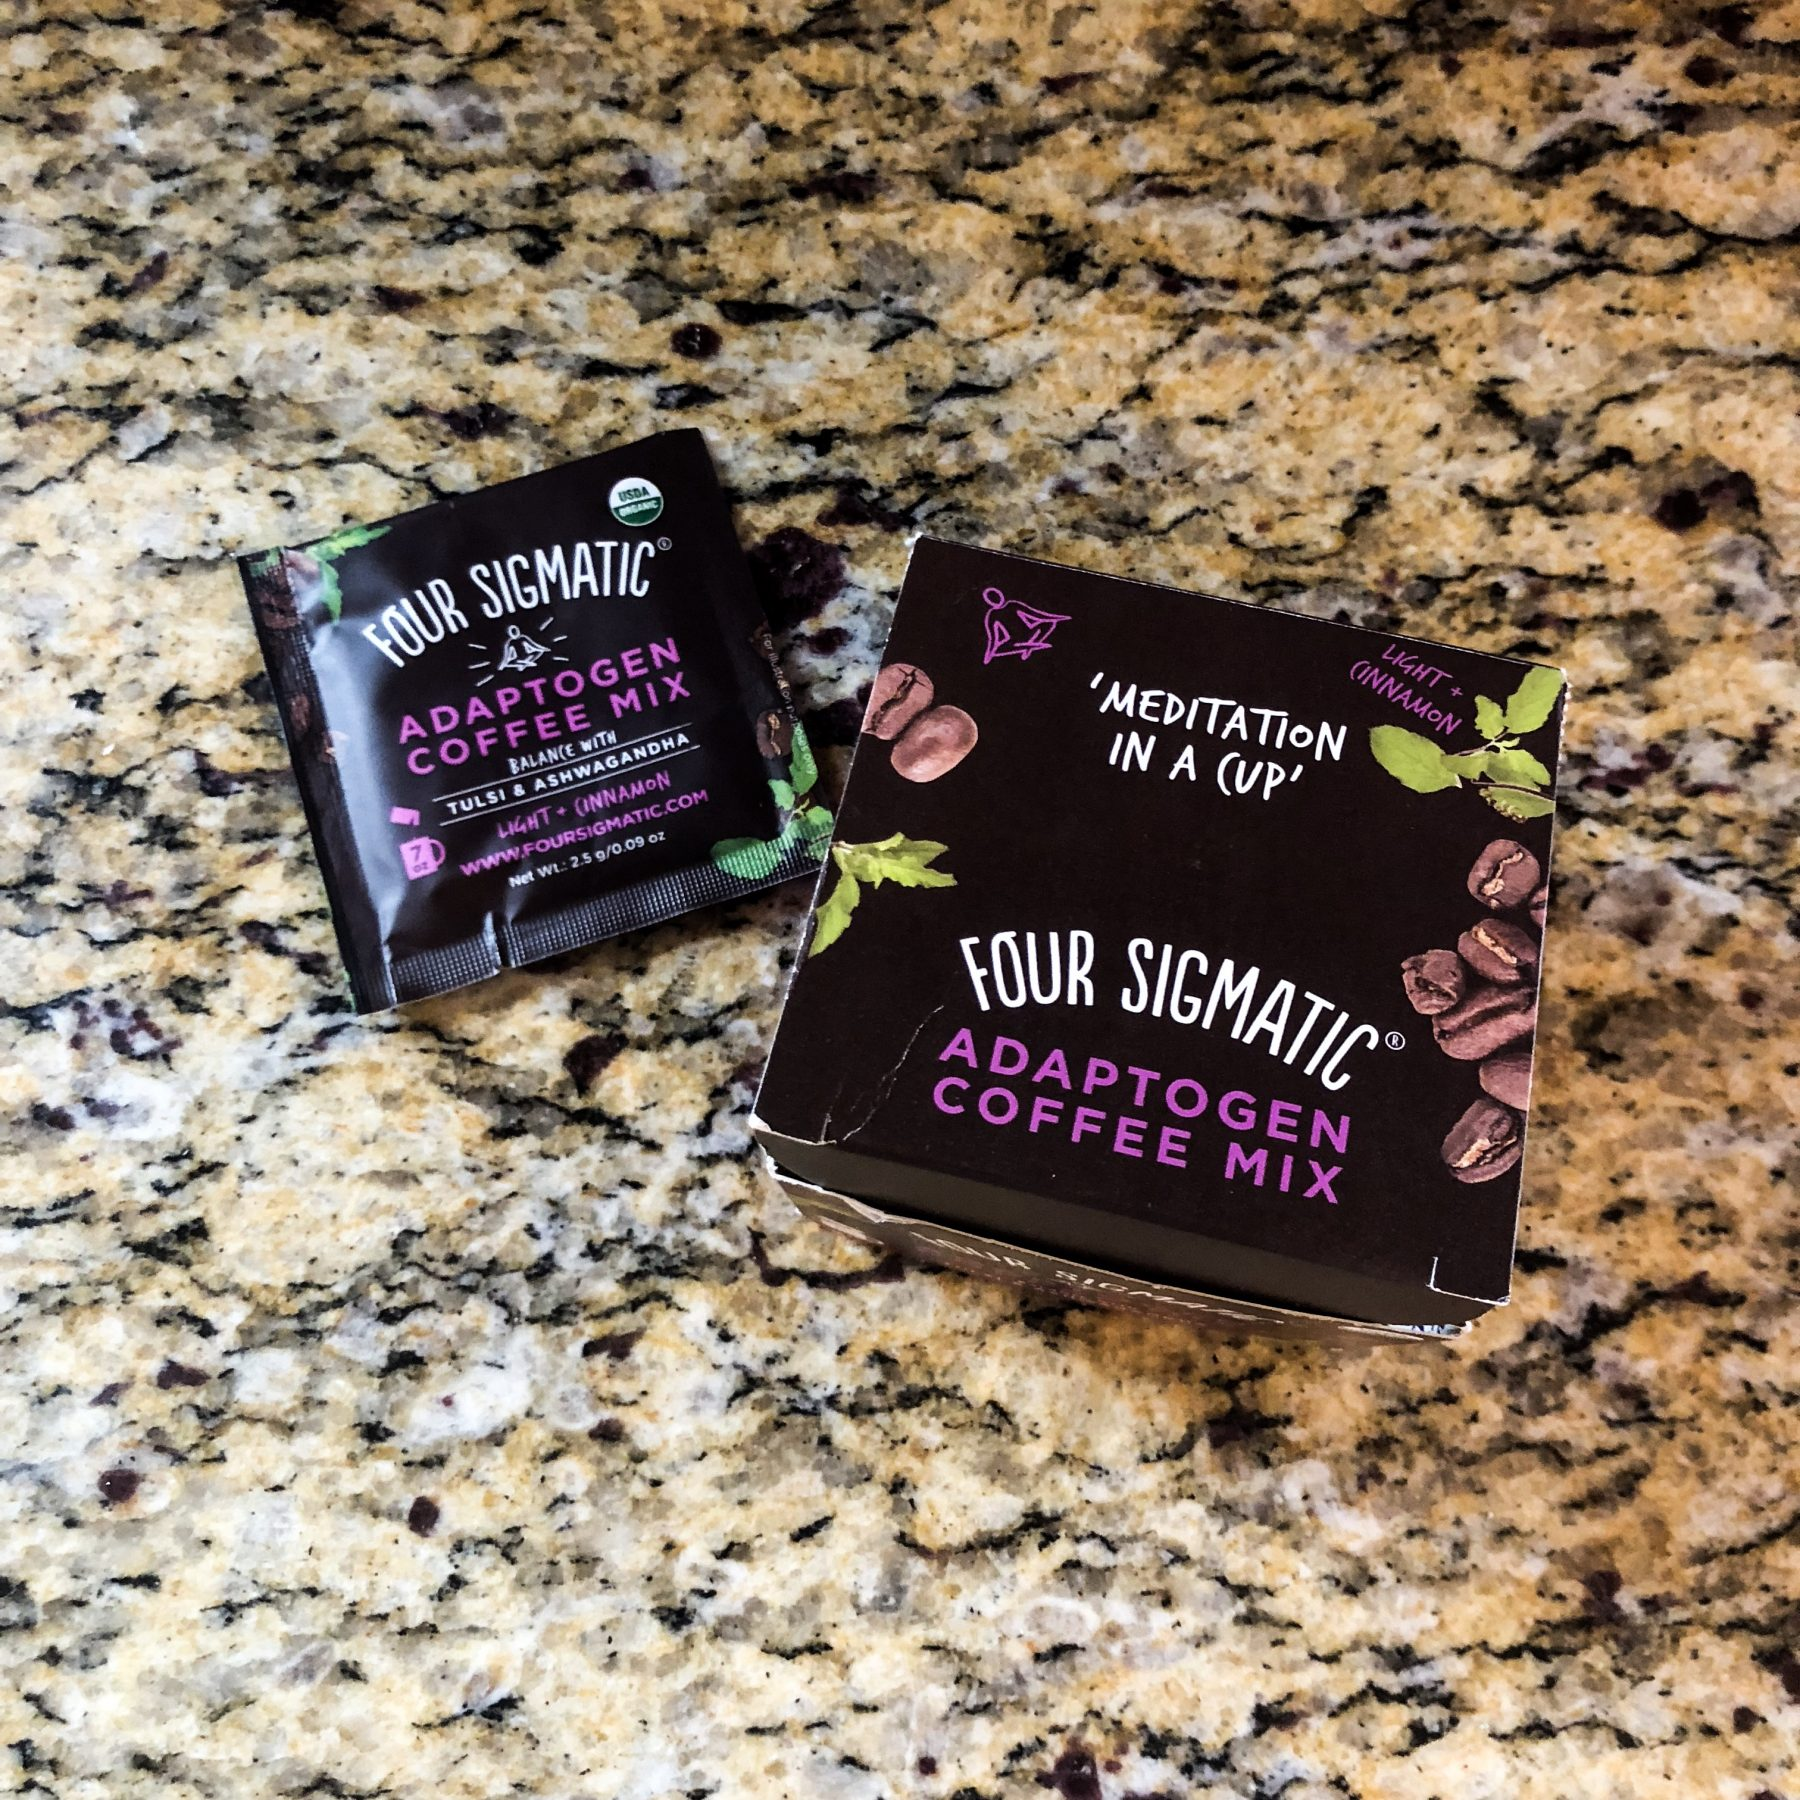 favorite four sigmatic coffee blend